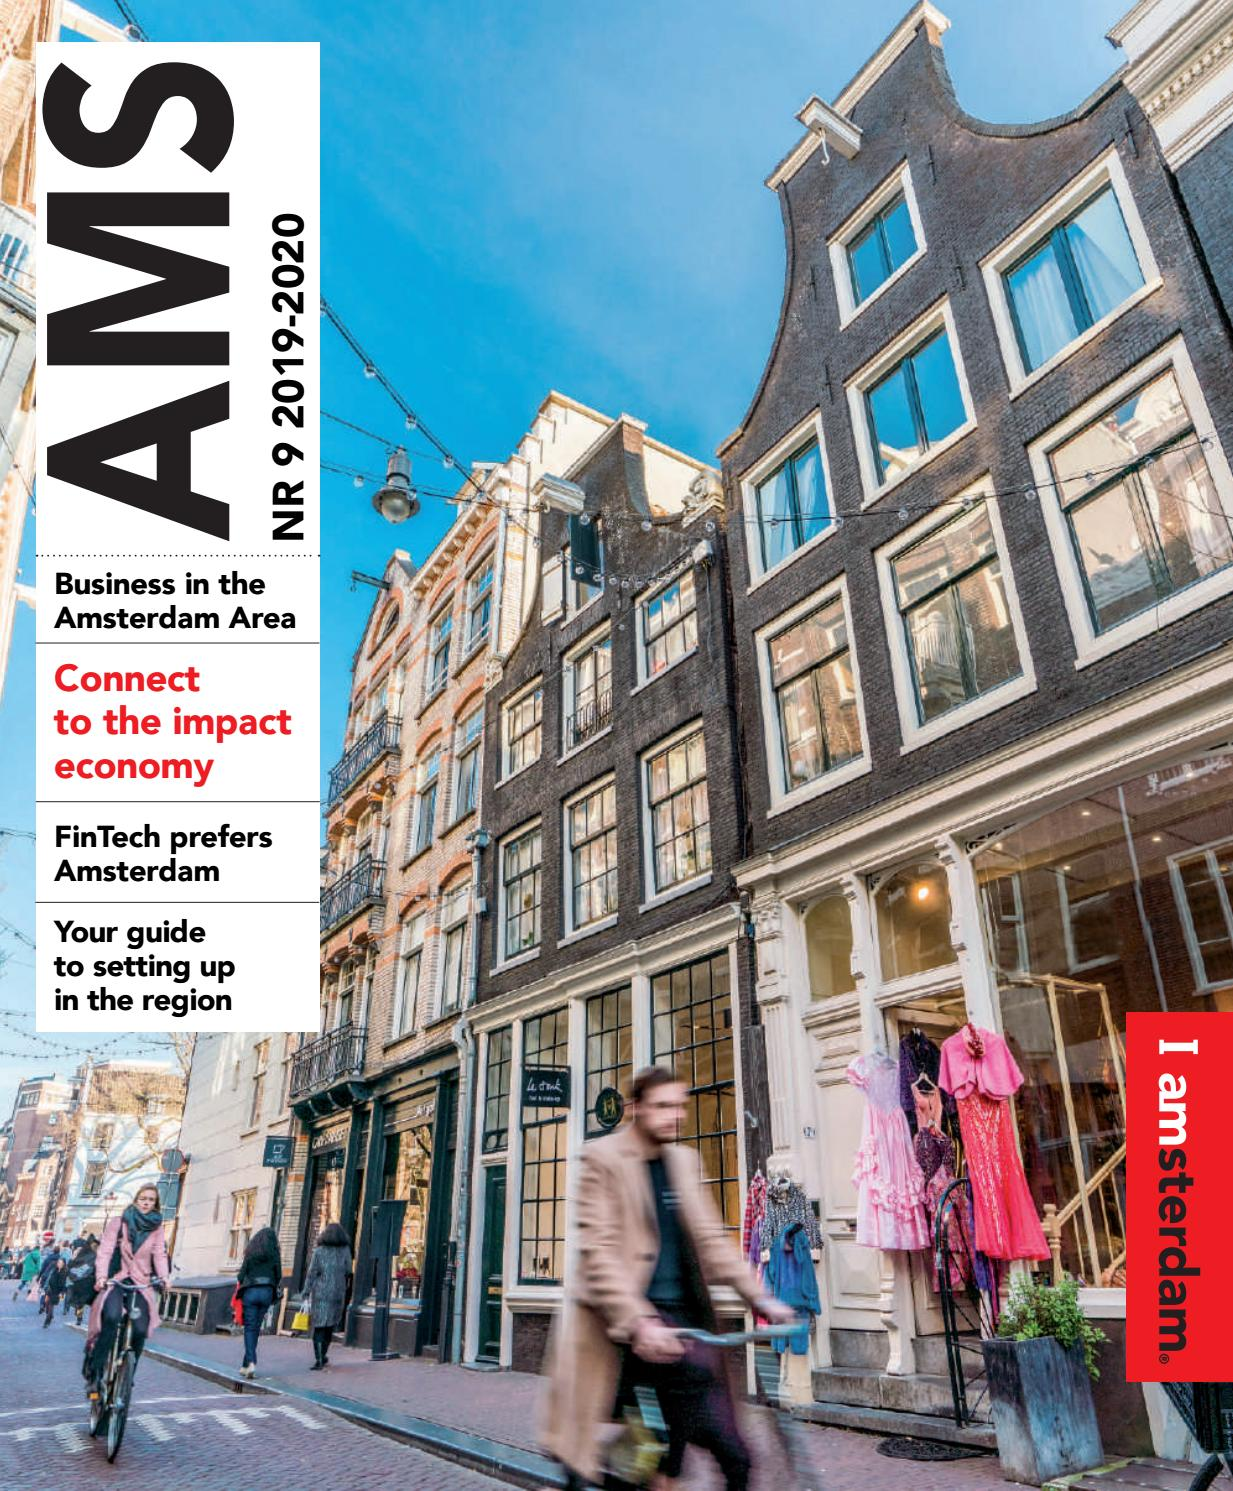 AMS 9 2019-2020 by amsterdam&partners - issuu